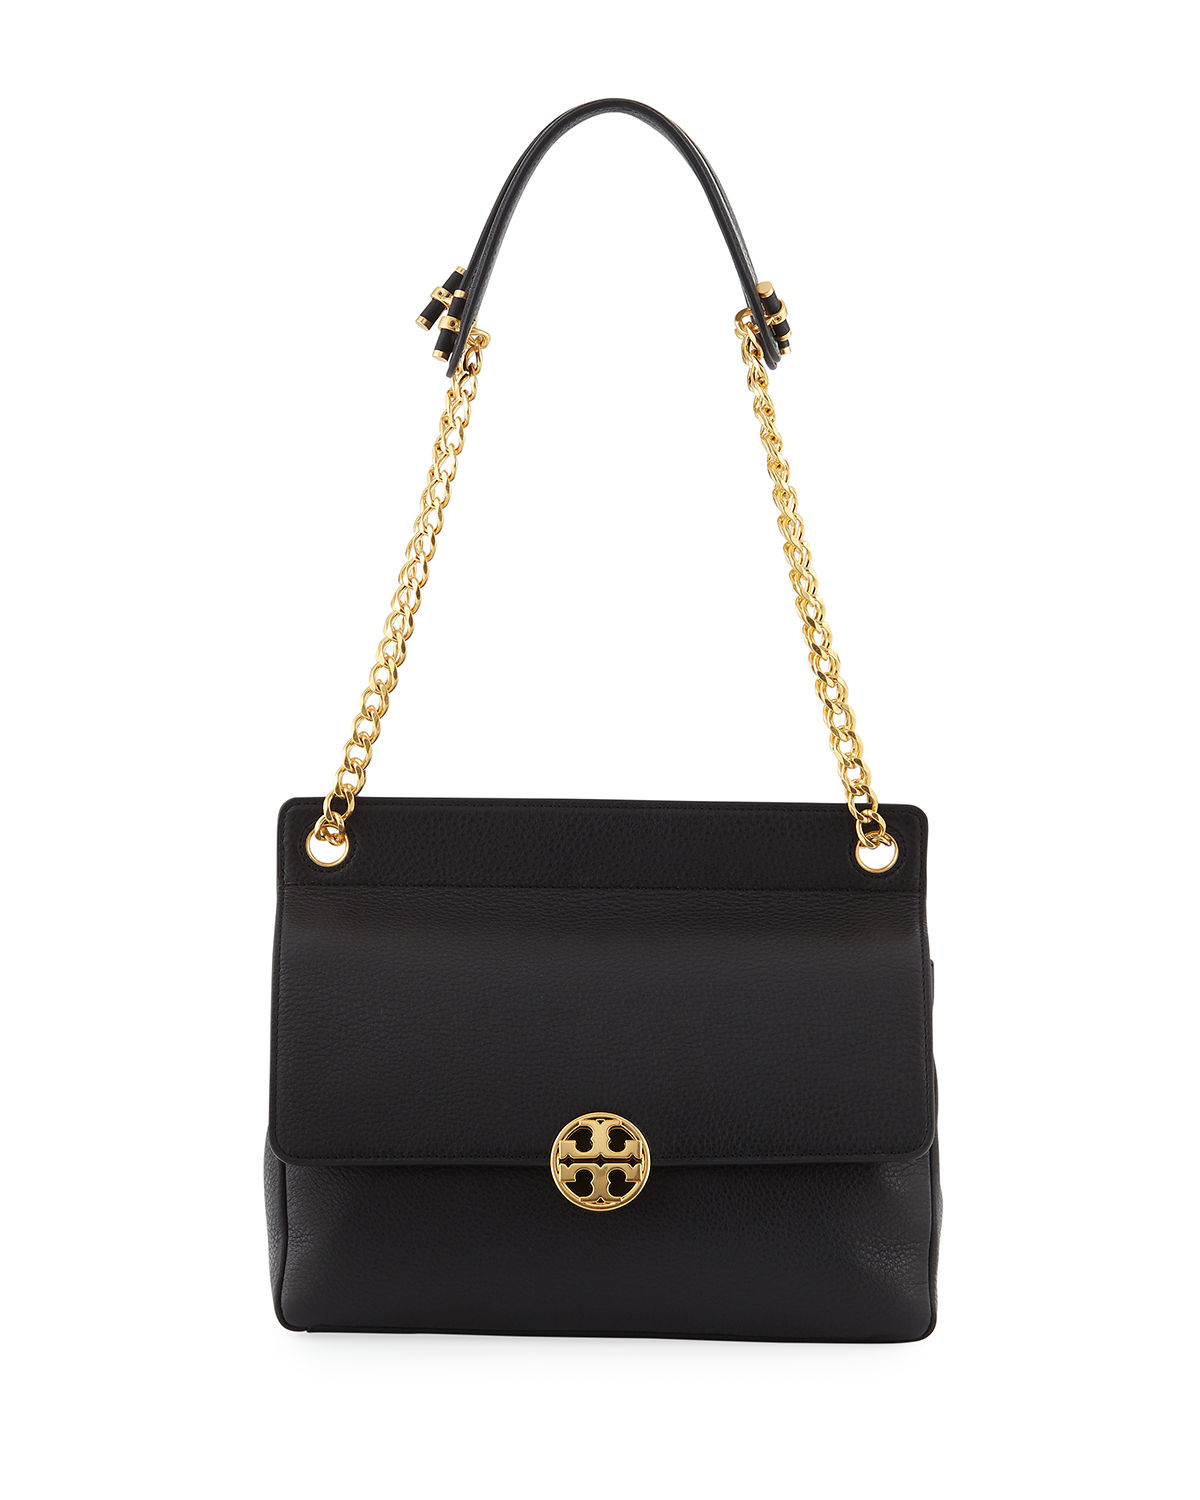 3ca5b41a86ea Tory Burch Chelsea Flap Shoulder Bag